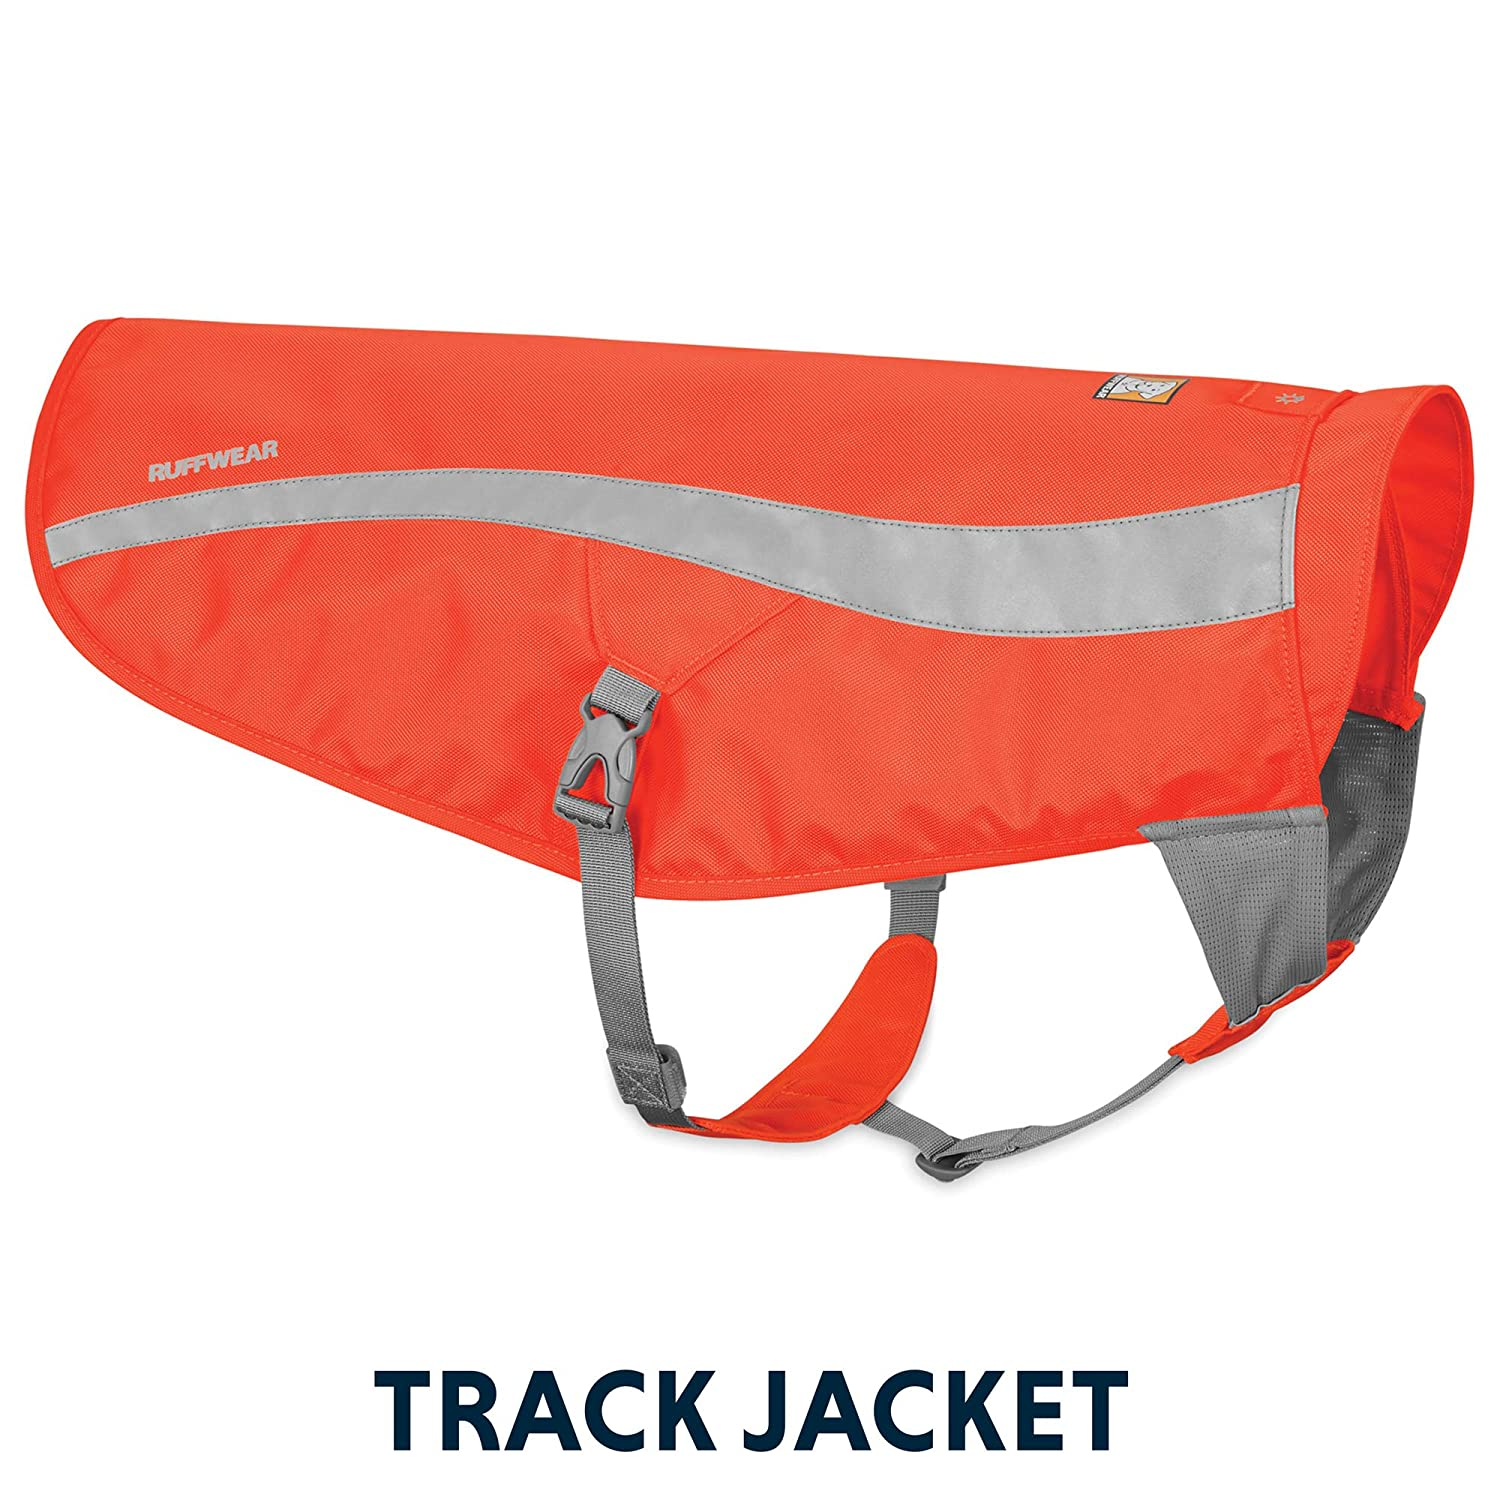 L XL Ruffwear Safety Jacket for Dogs, High Visibility, Reflective, Hunting and Working Dogs, Large to Very Large Breeds, Size  Large X-Large, Blaze orange, Track Jacket, 55202-850LL1